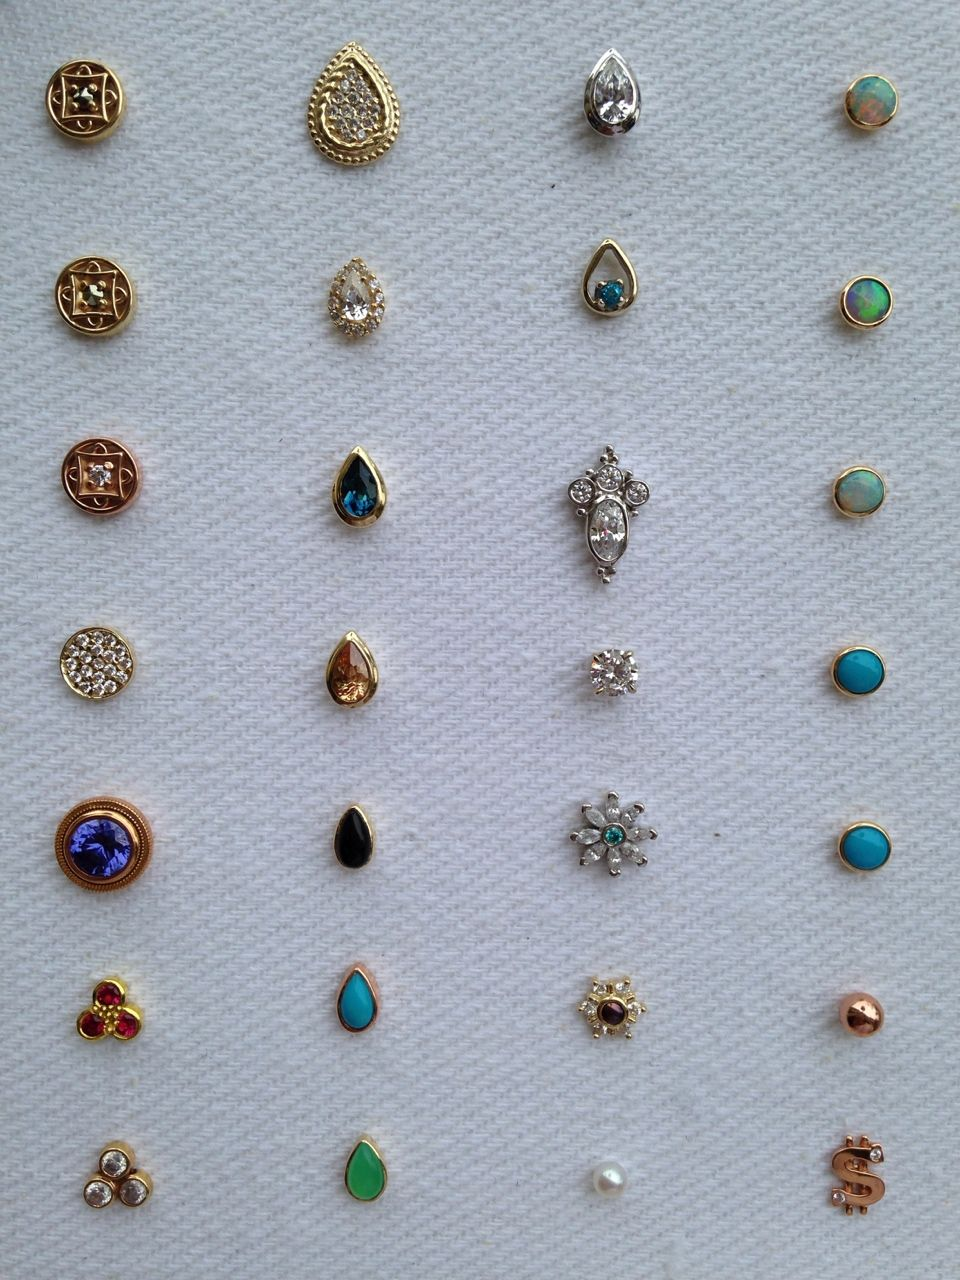 Earring Tops With Images Nose Jewelry Piercings Second Ear